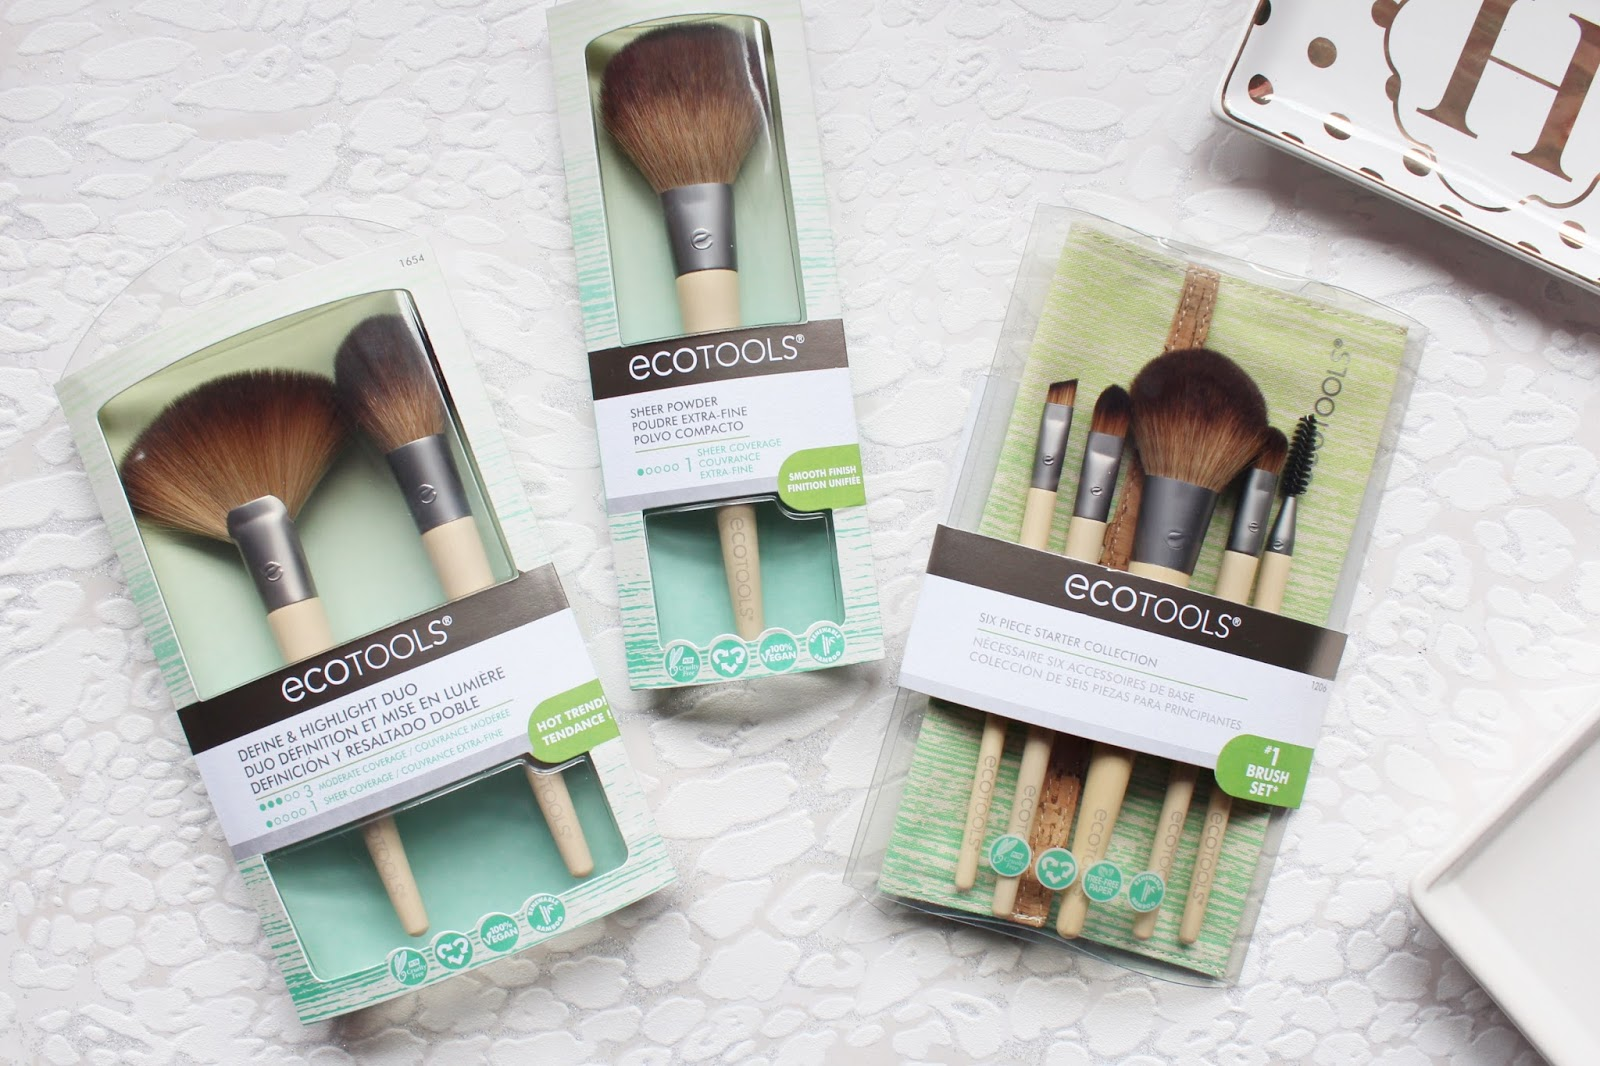 Ecotools Brushes